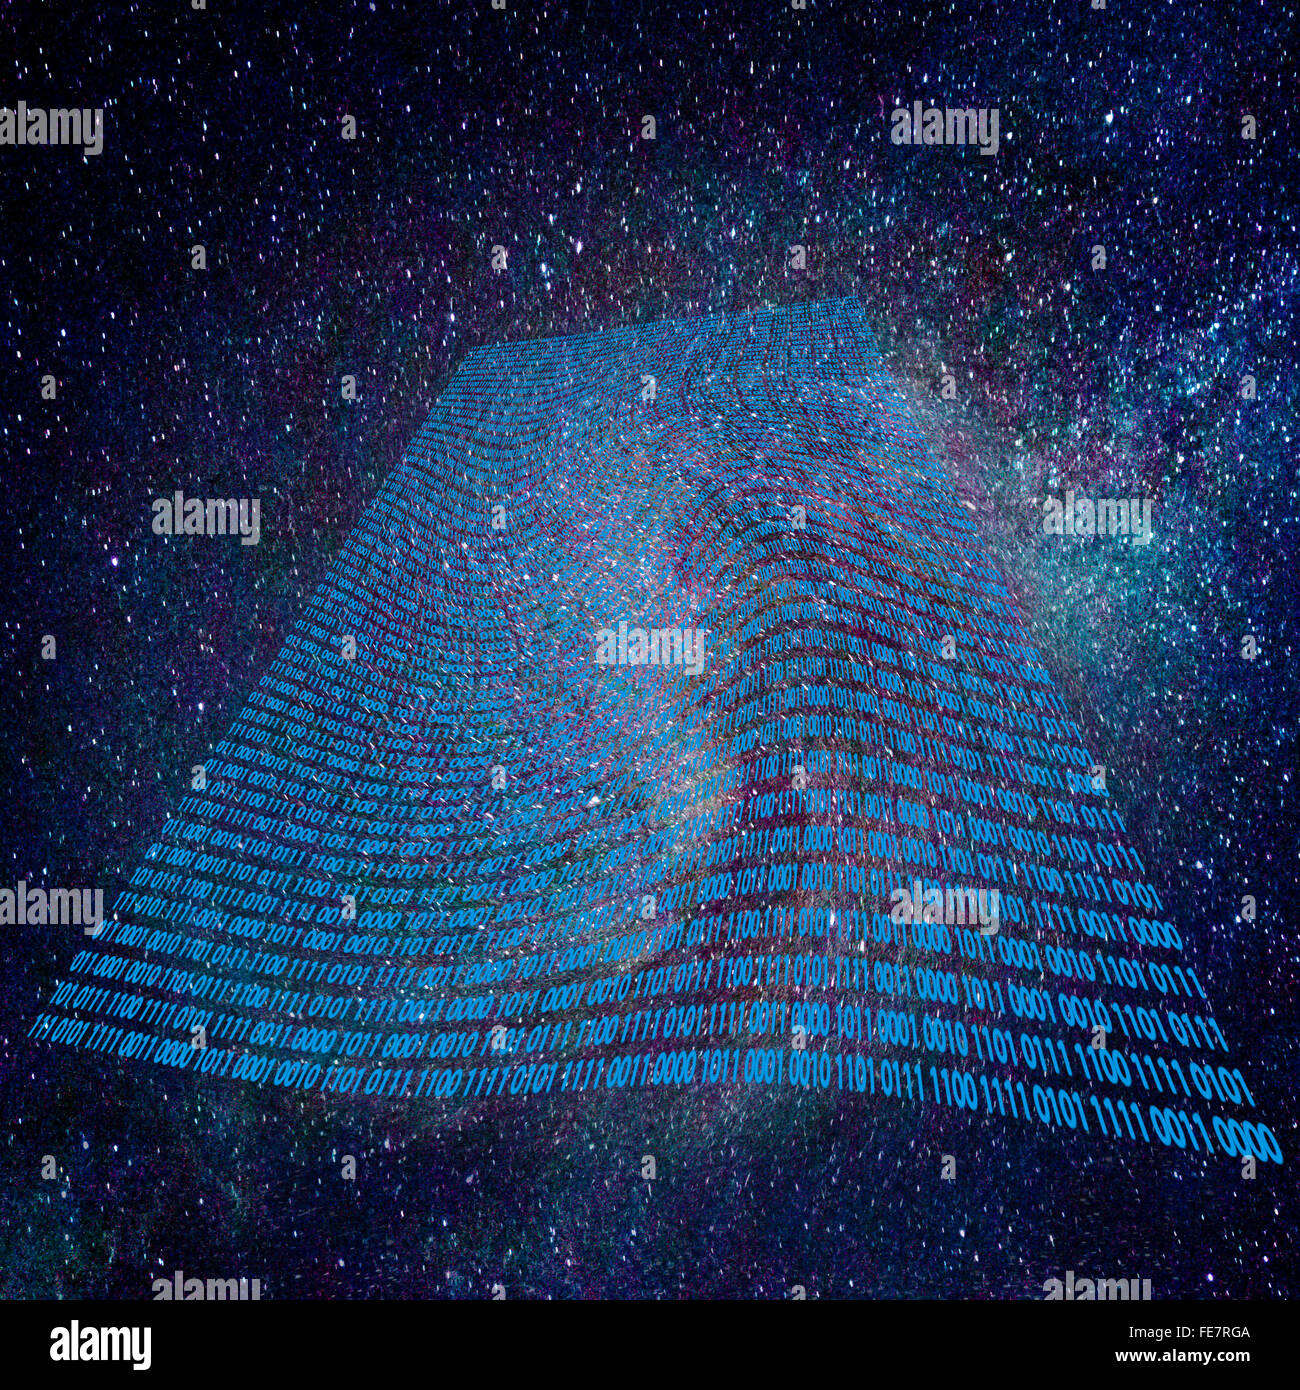 Space - Time fabric. Time Warp - Time Dilation. Quantum mechanics meets general relativity. - Stock Image